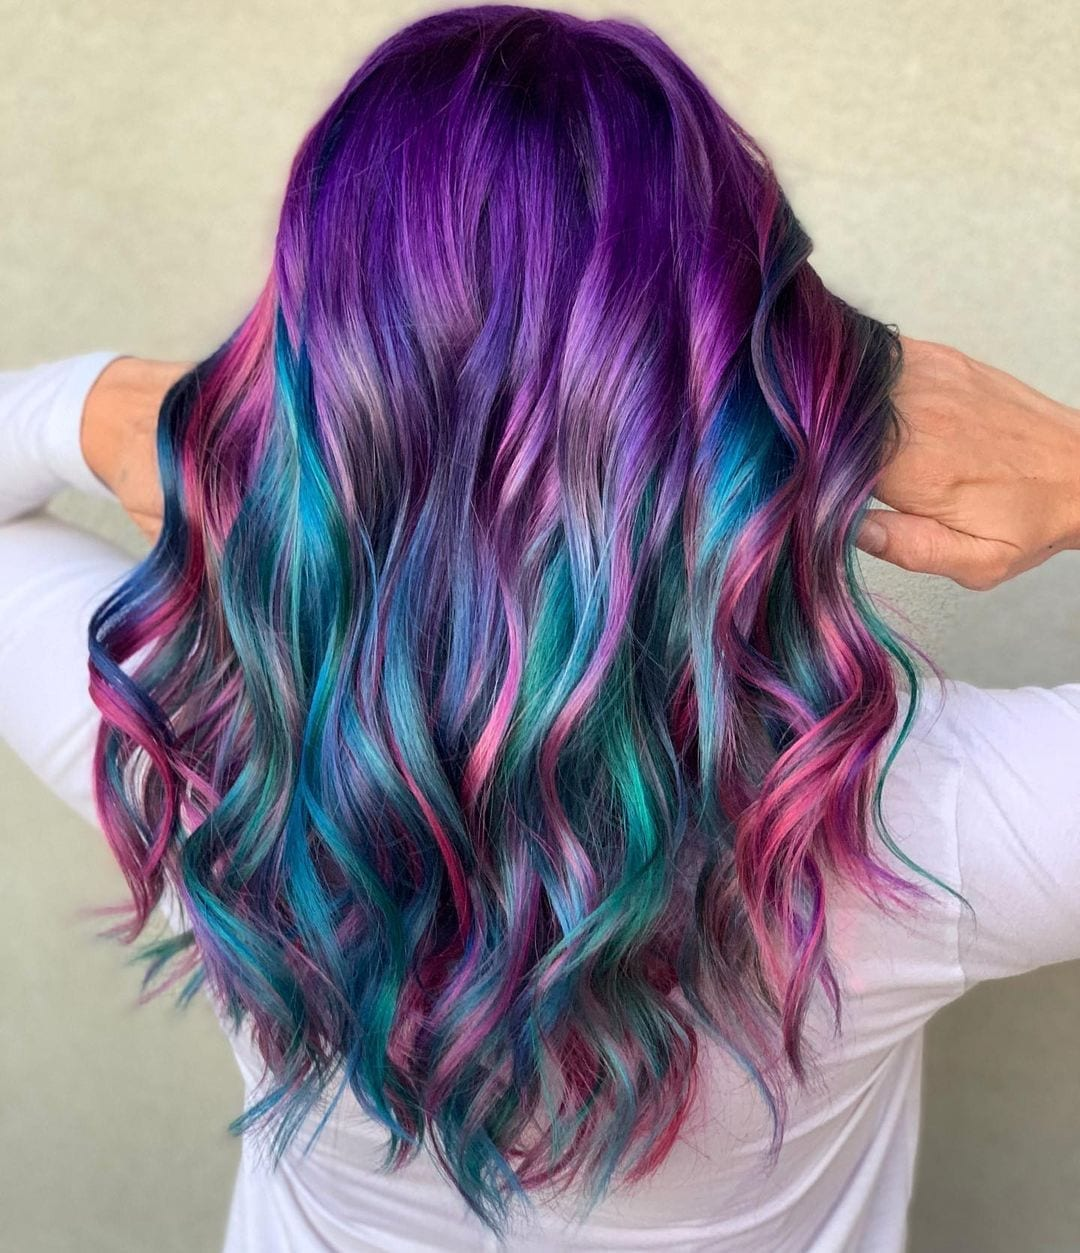 Woman with purple and pink galaxy hair holds it at the base